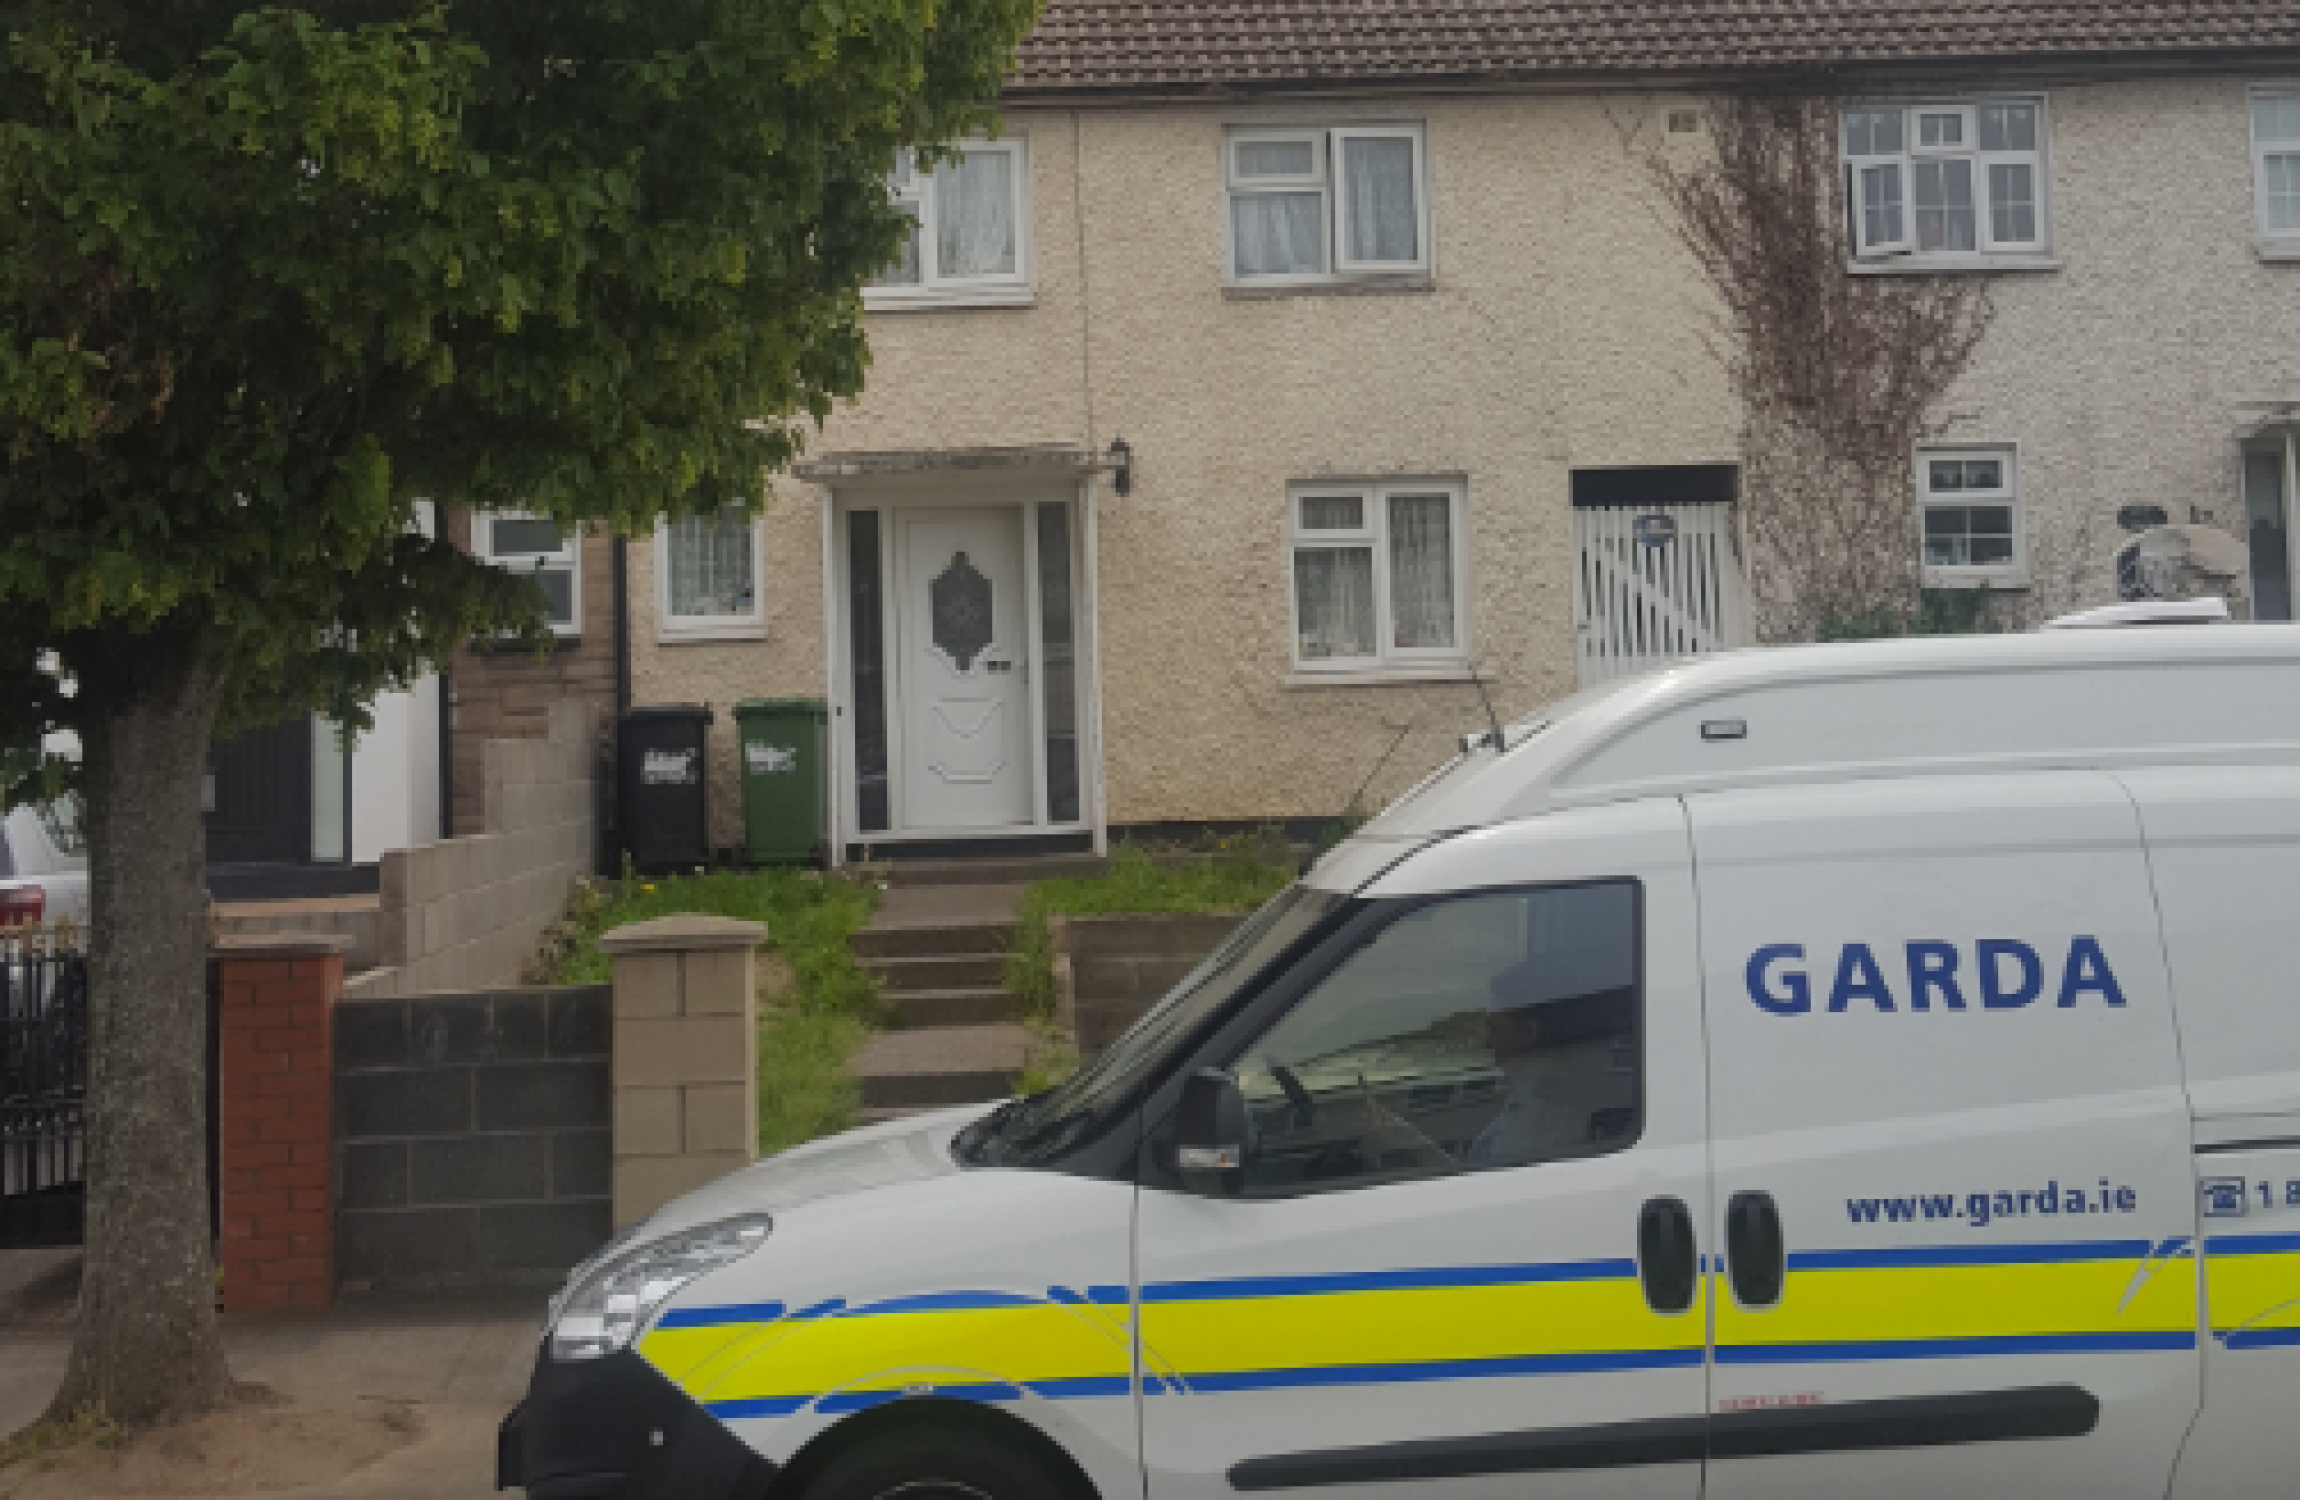 'It was self-defence' - Man in court over murder of Dublin gran